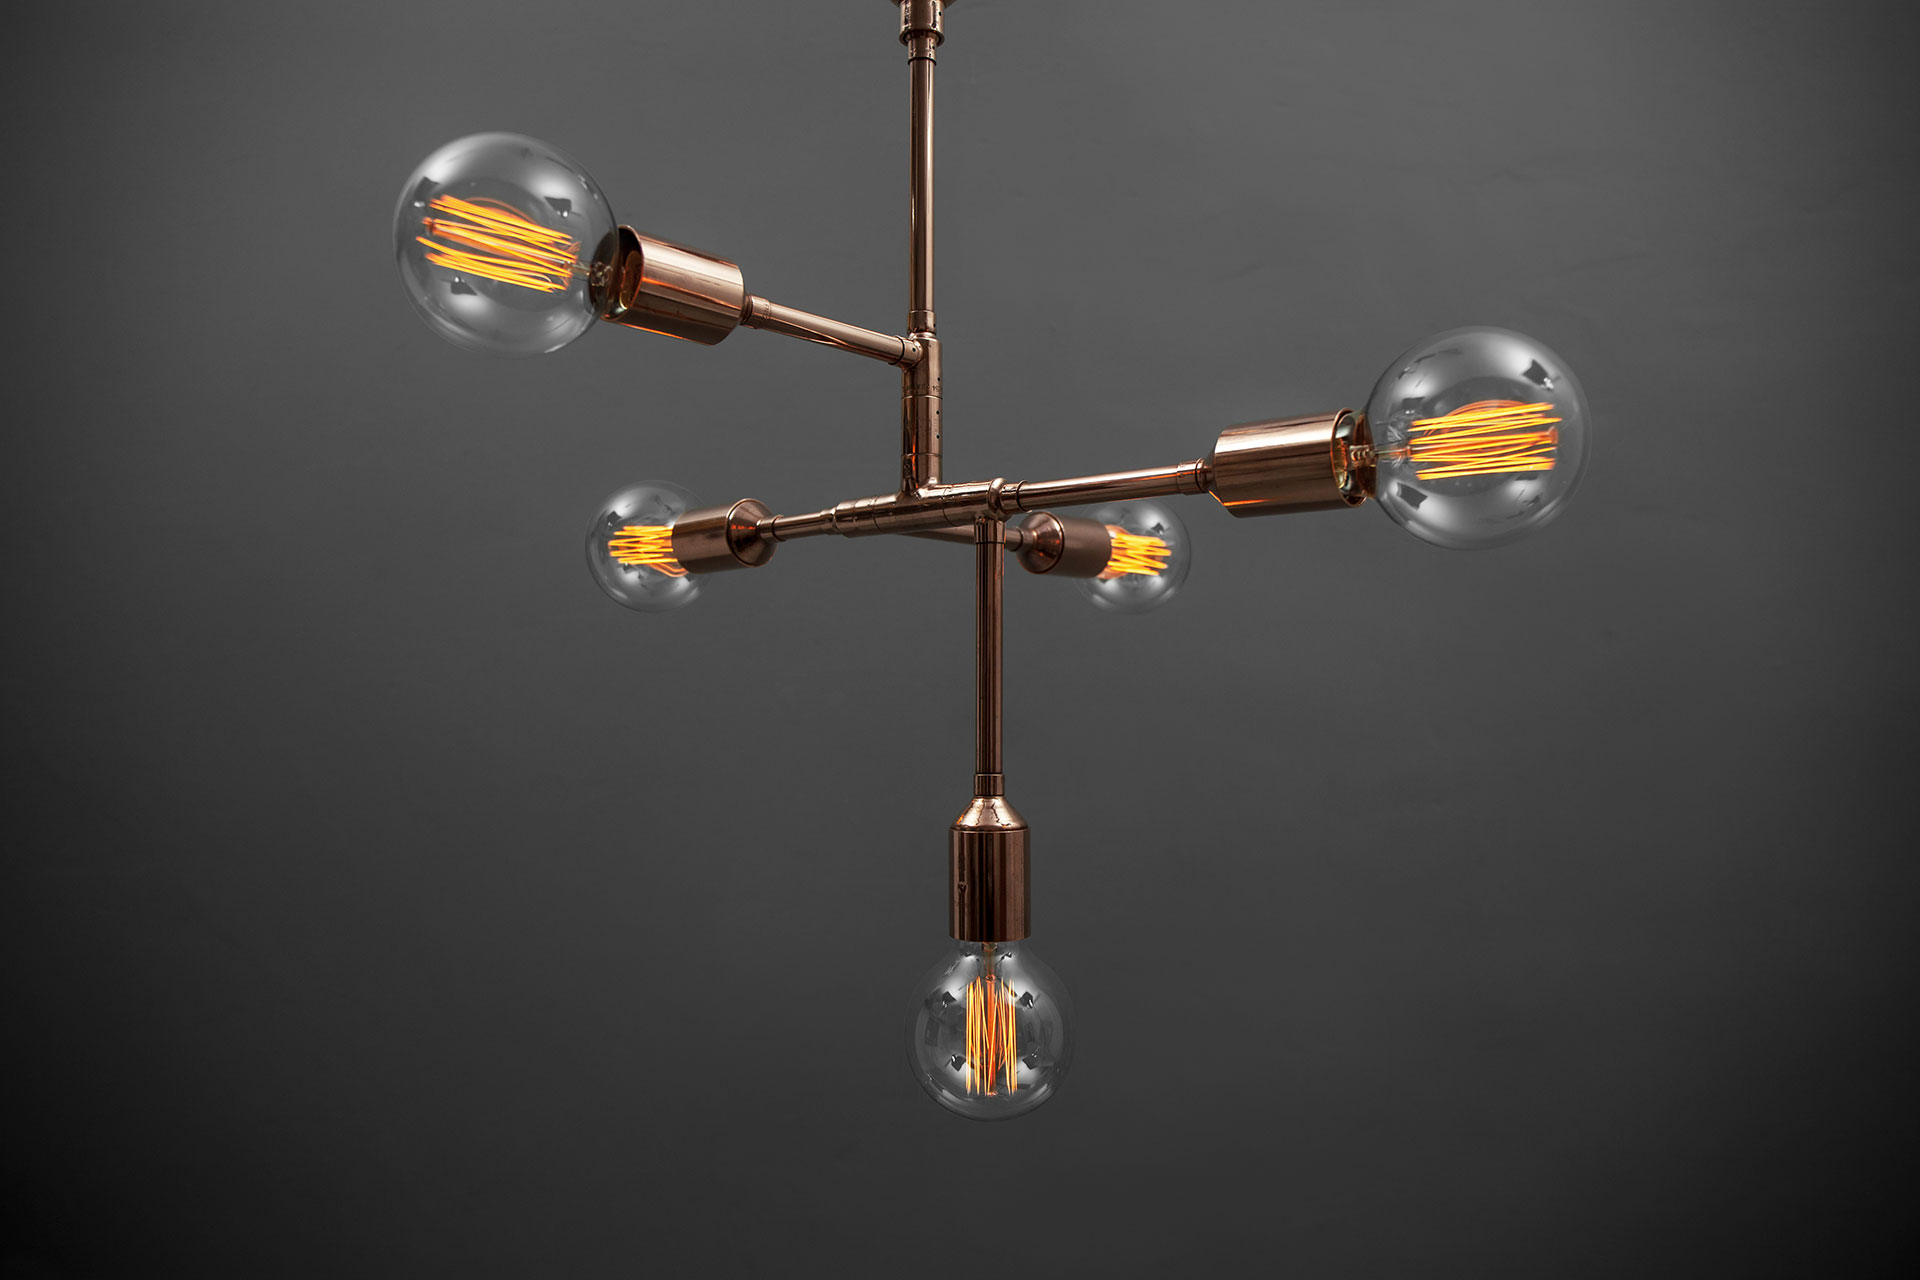 Conceptual design ceiling lamp in copper or brass with Edison bulbs